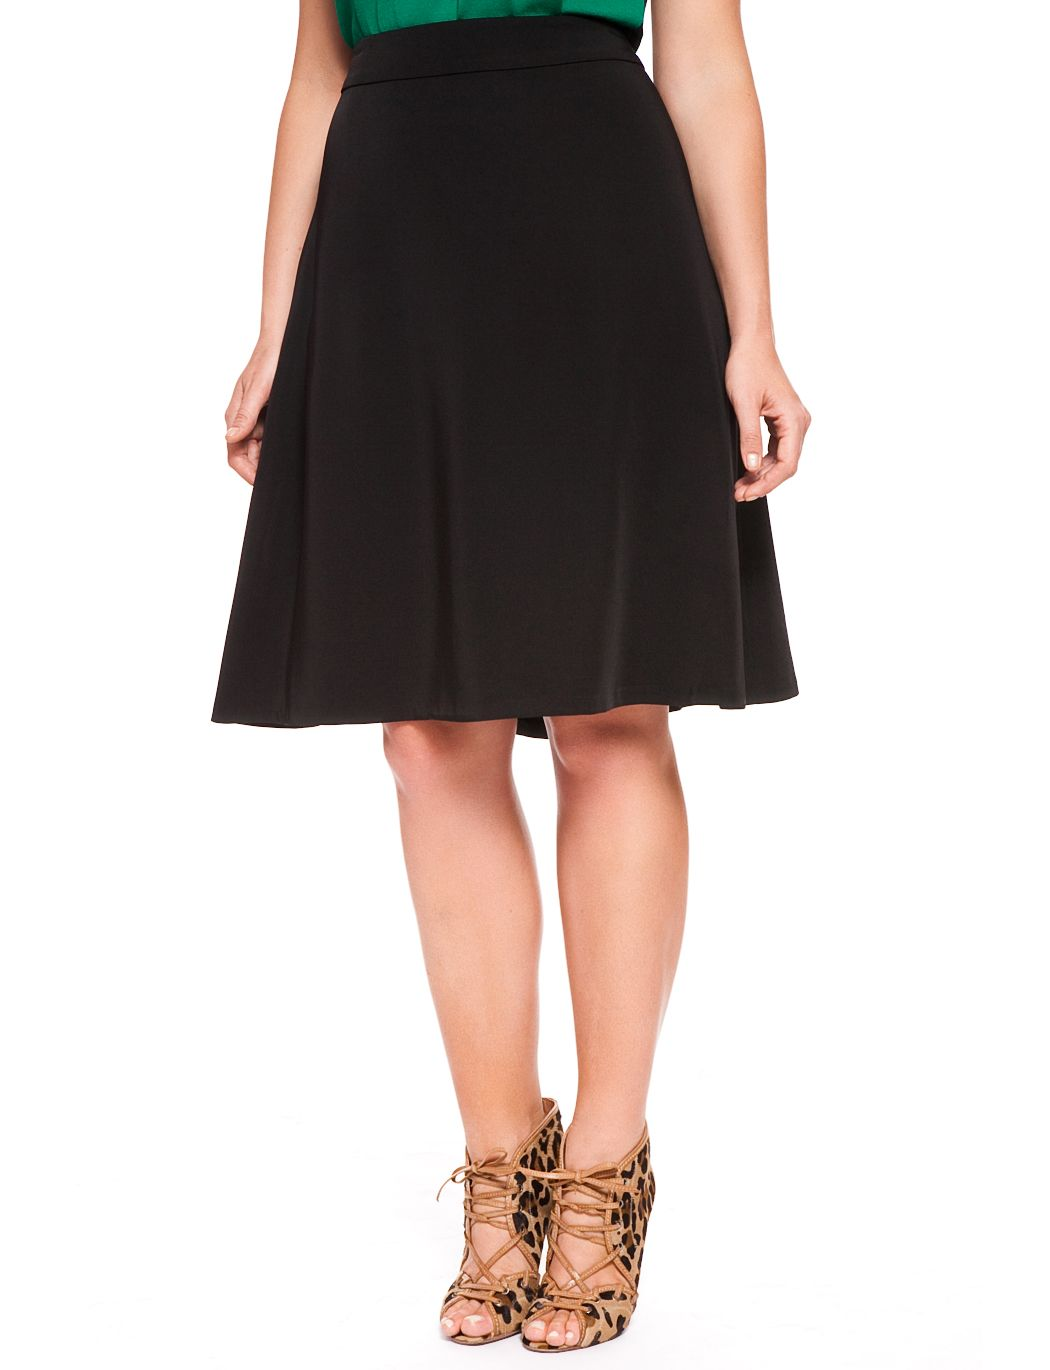 Bias Crepe A-Line Skirt | Women's Plus Size Skirts | ELOQUII.  shared on  WWW.perfectlyshapedworld.com/FB